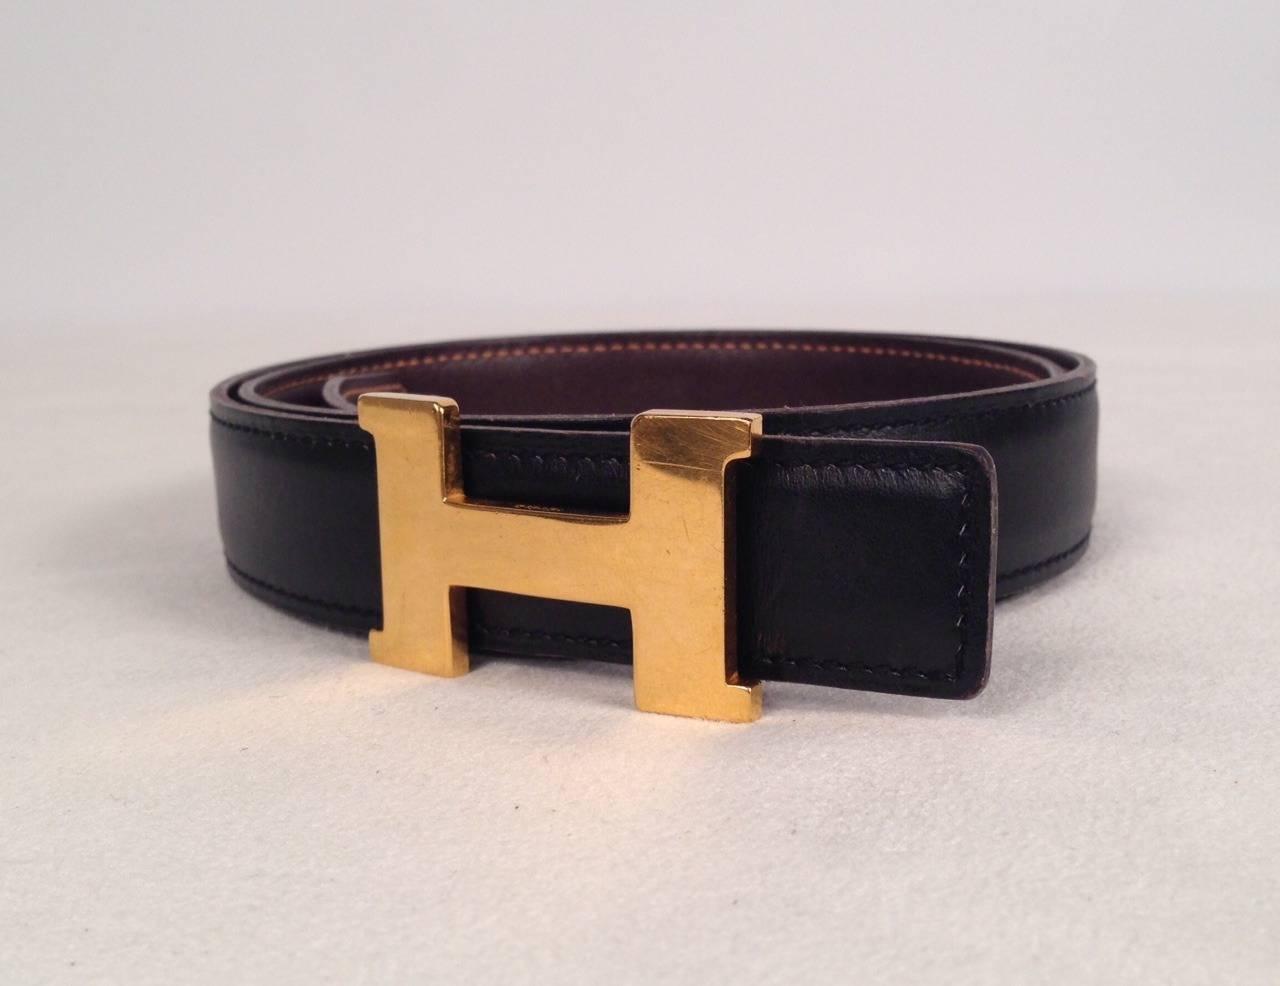 Hermes Reversible Belt With Small Constance Gold Tone Buckle 3